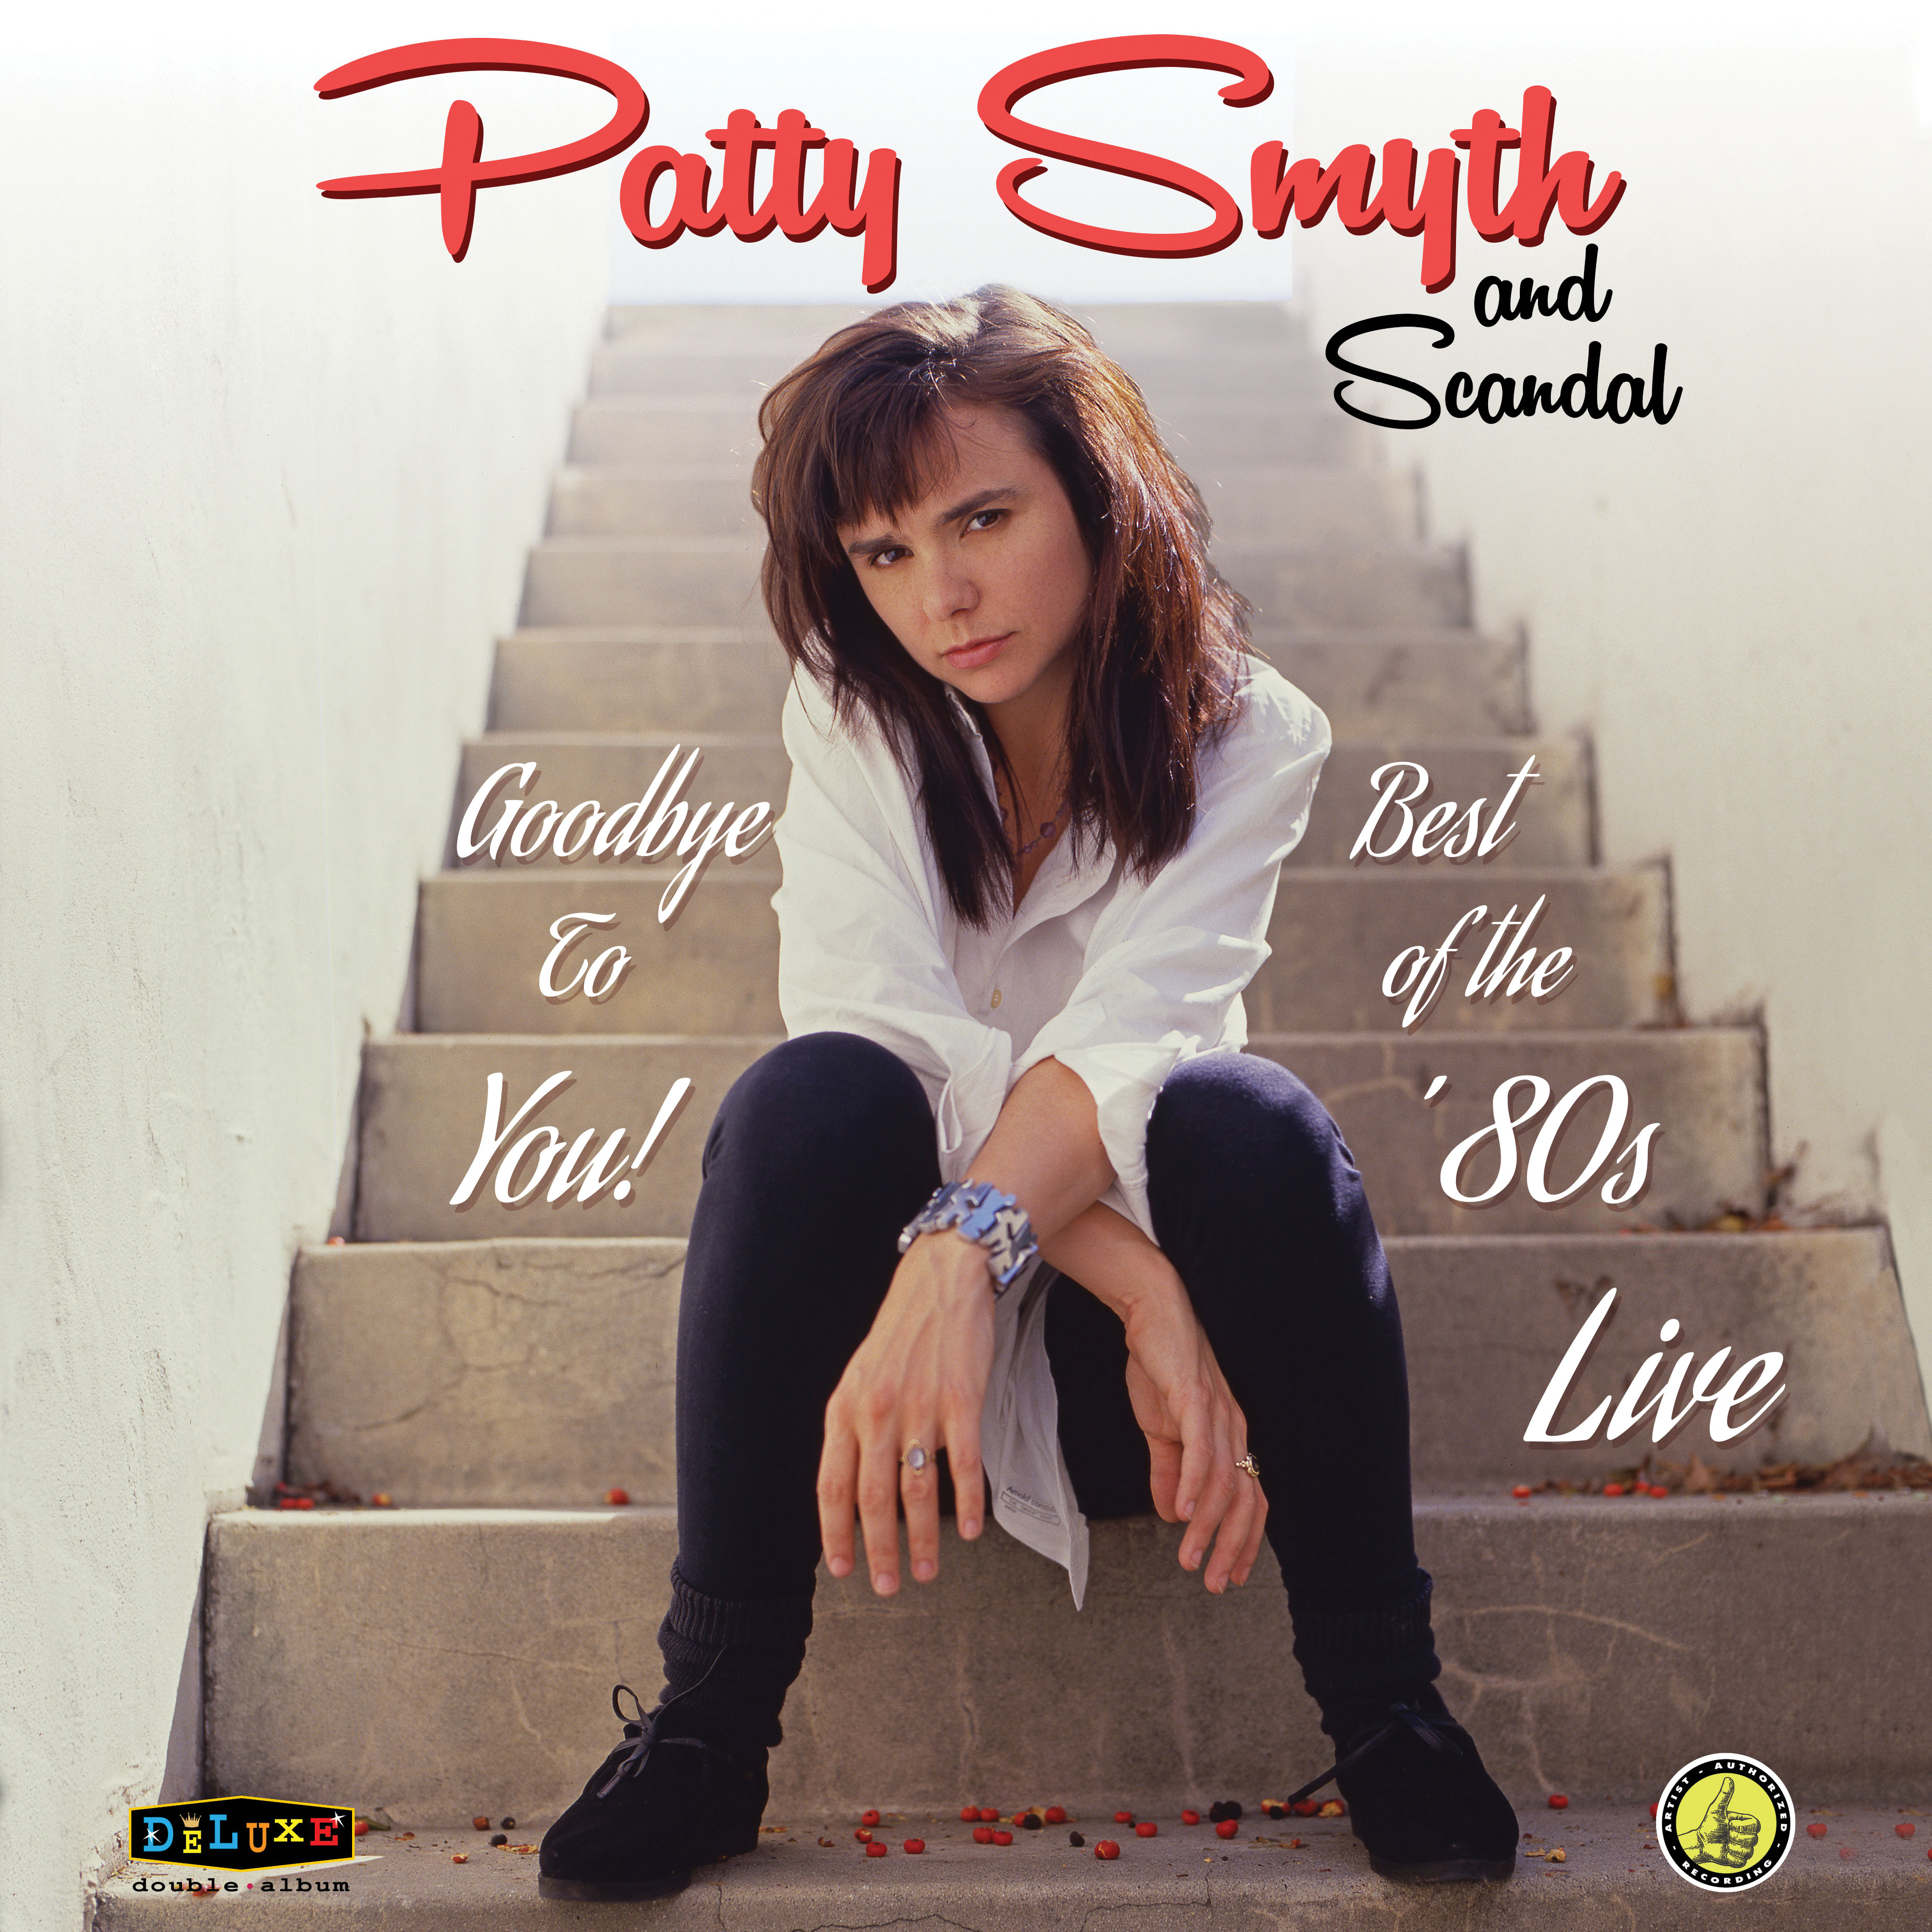 Greatest Hits Featuring Scandal Patty Smyth: Goodbye To You! Best Of The '80s